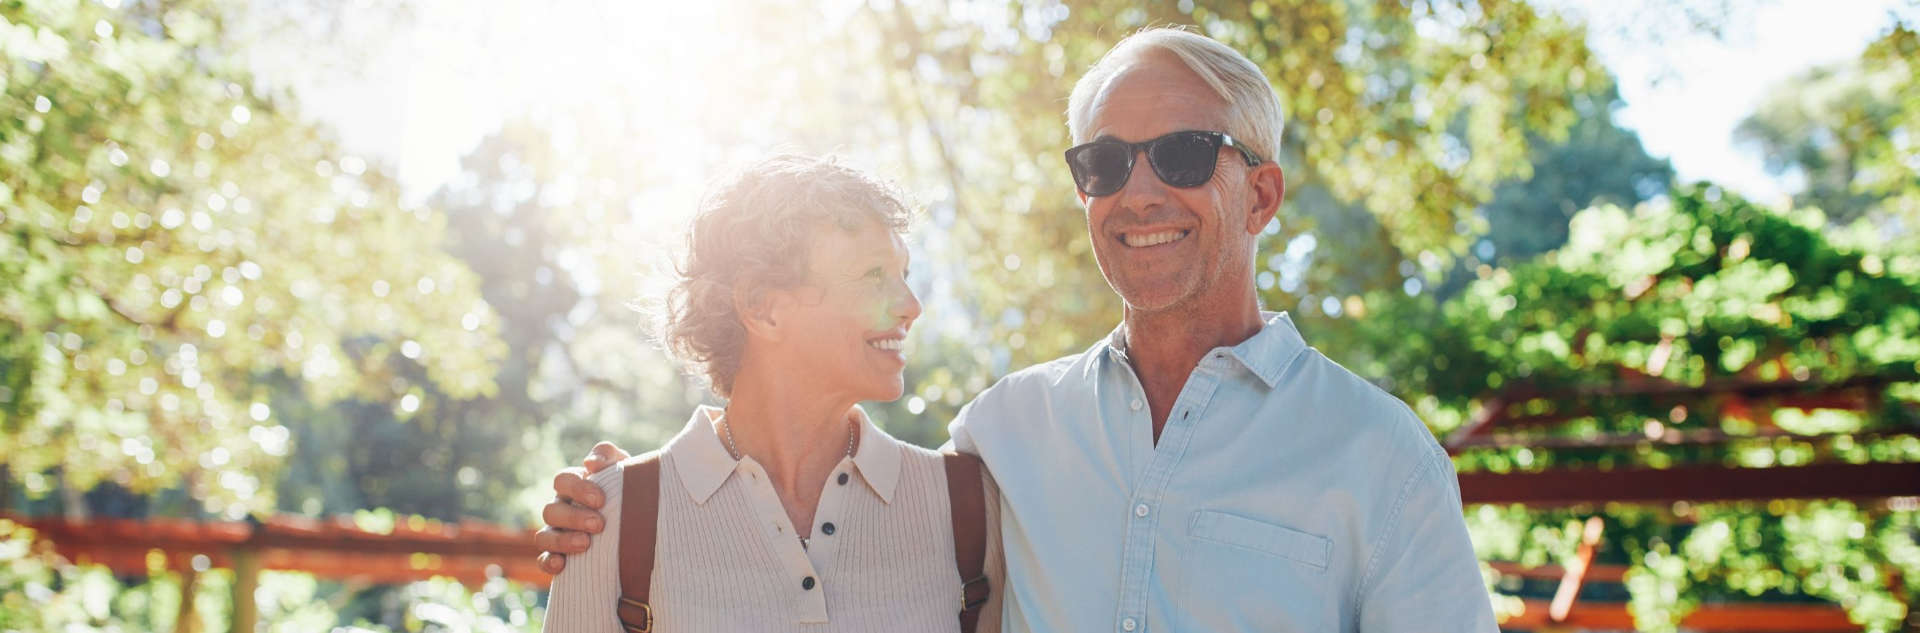 older couple smilign to the camera while outdoors